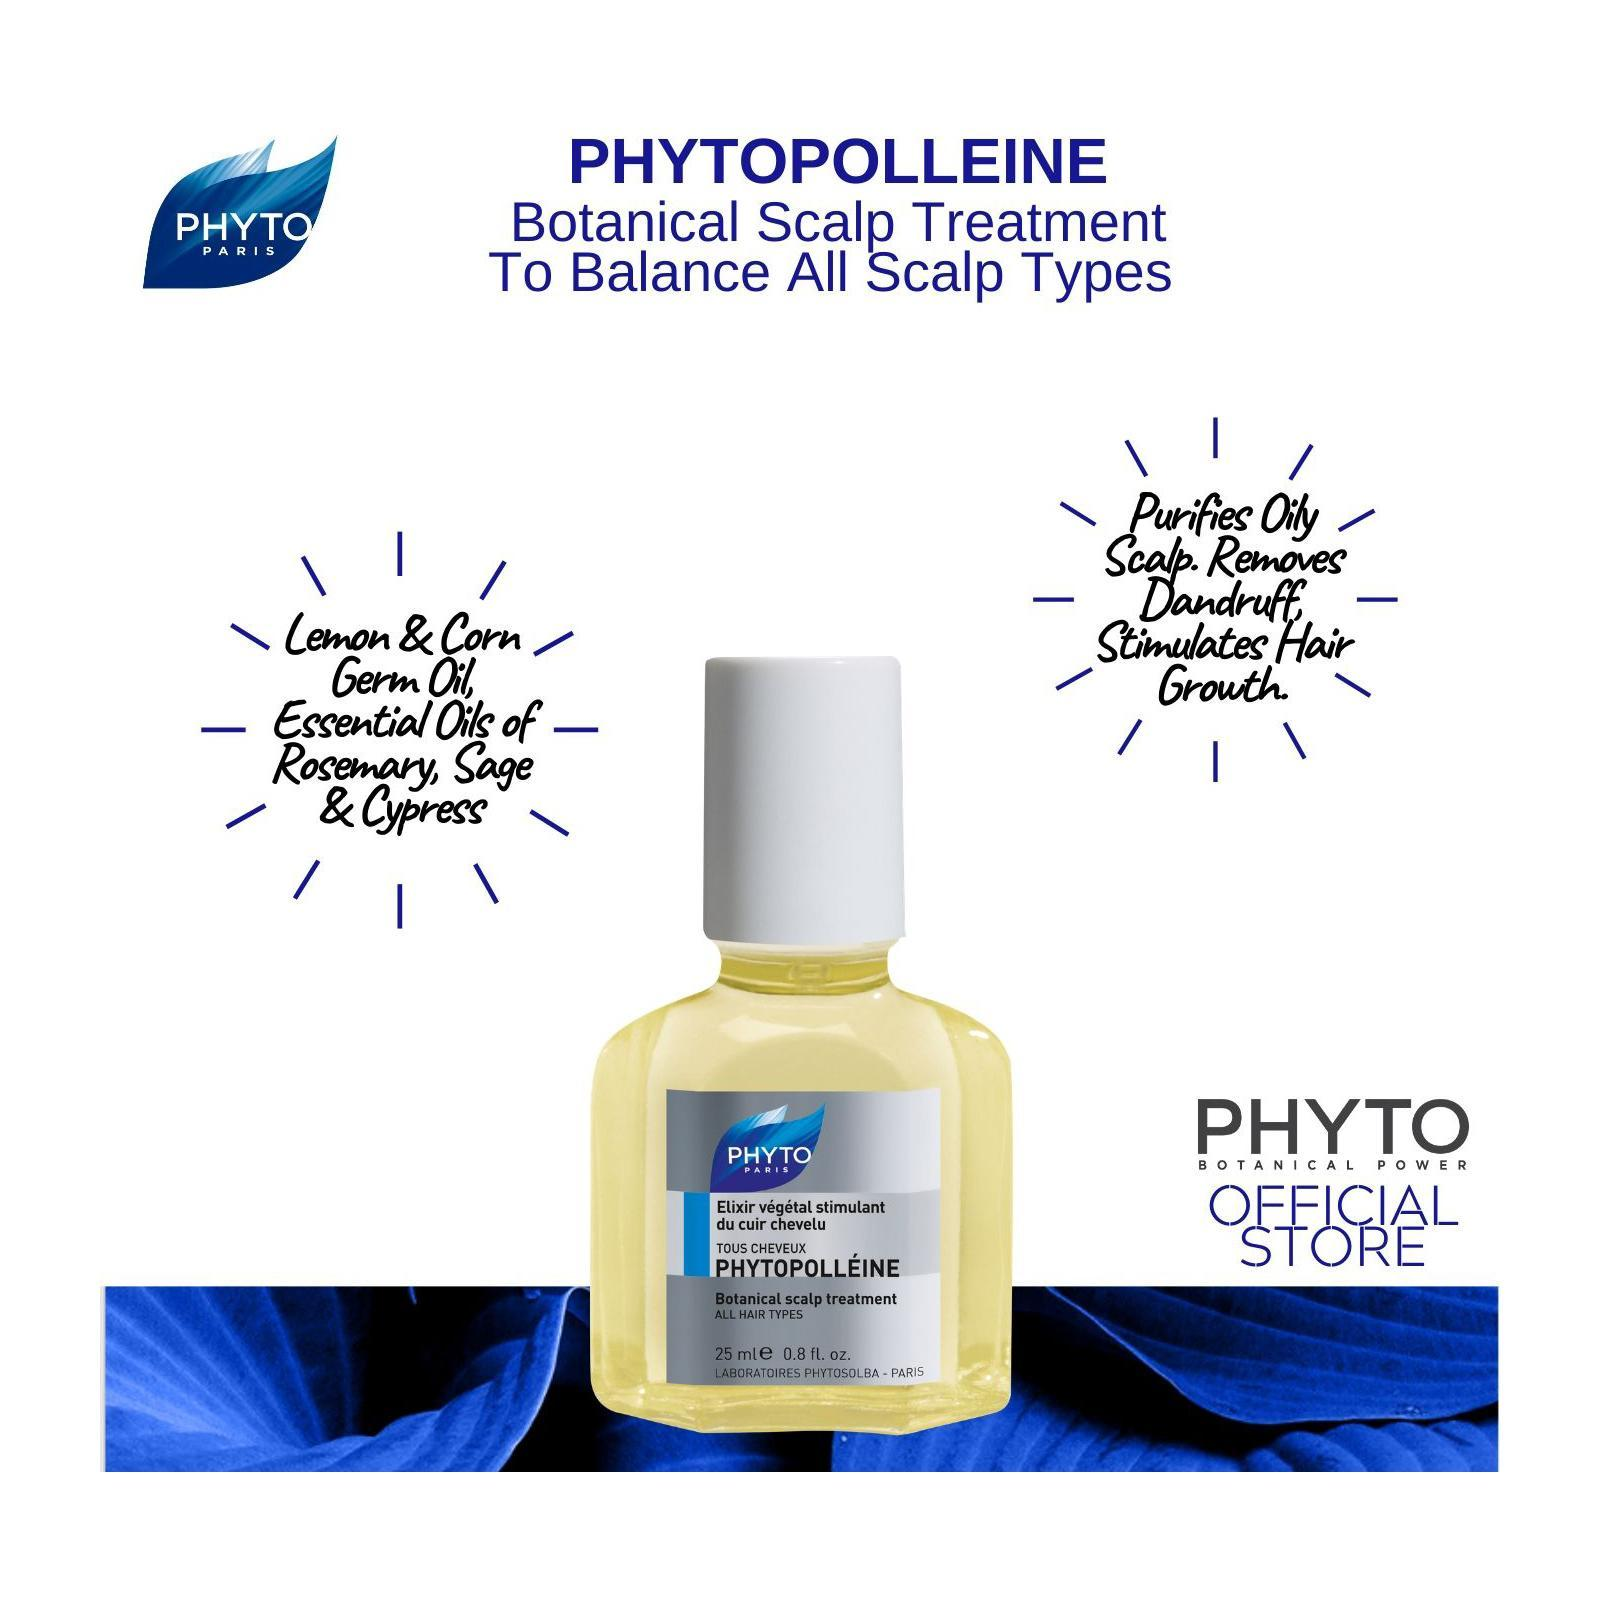 Phyto Phytopolleine Botanical Pre-Shampoo Scalp Stimulating Treatment